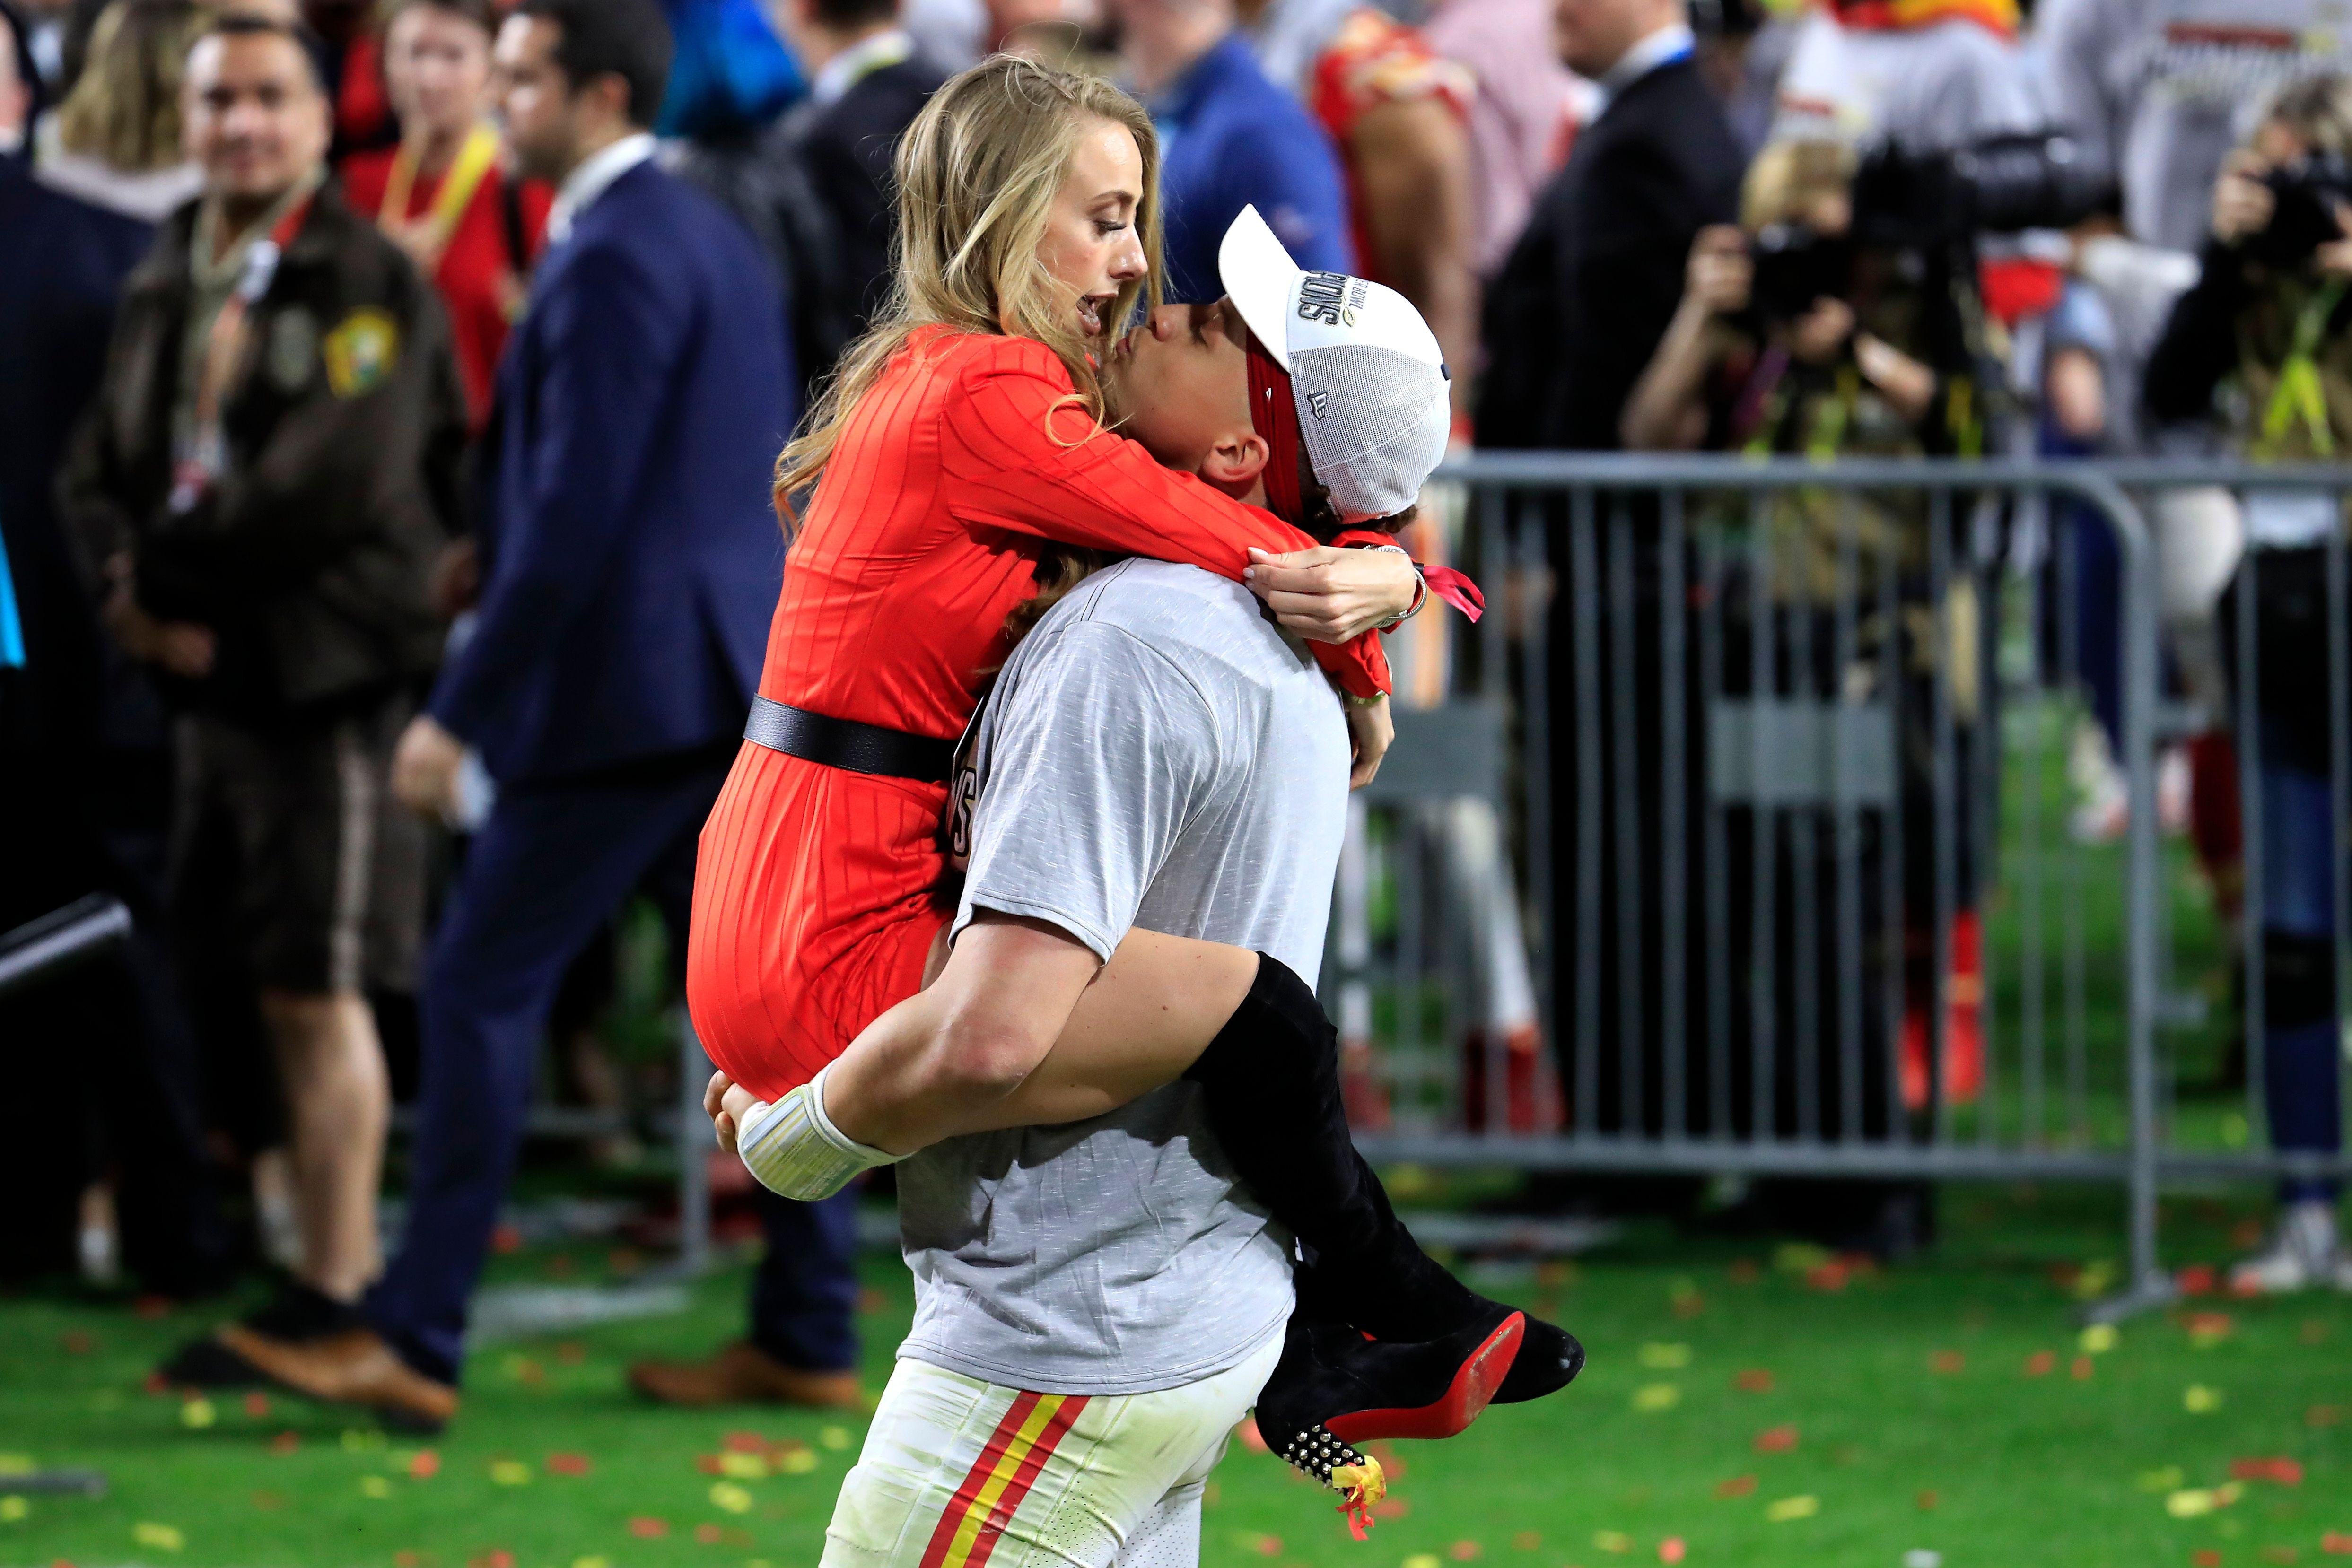 Patrick Mahomes celebrates with girlfriend, Brittany Matthews, after winning the 2020 Super Bowl in Miami | Source: Getty Images